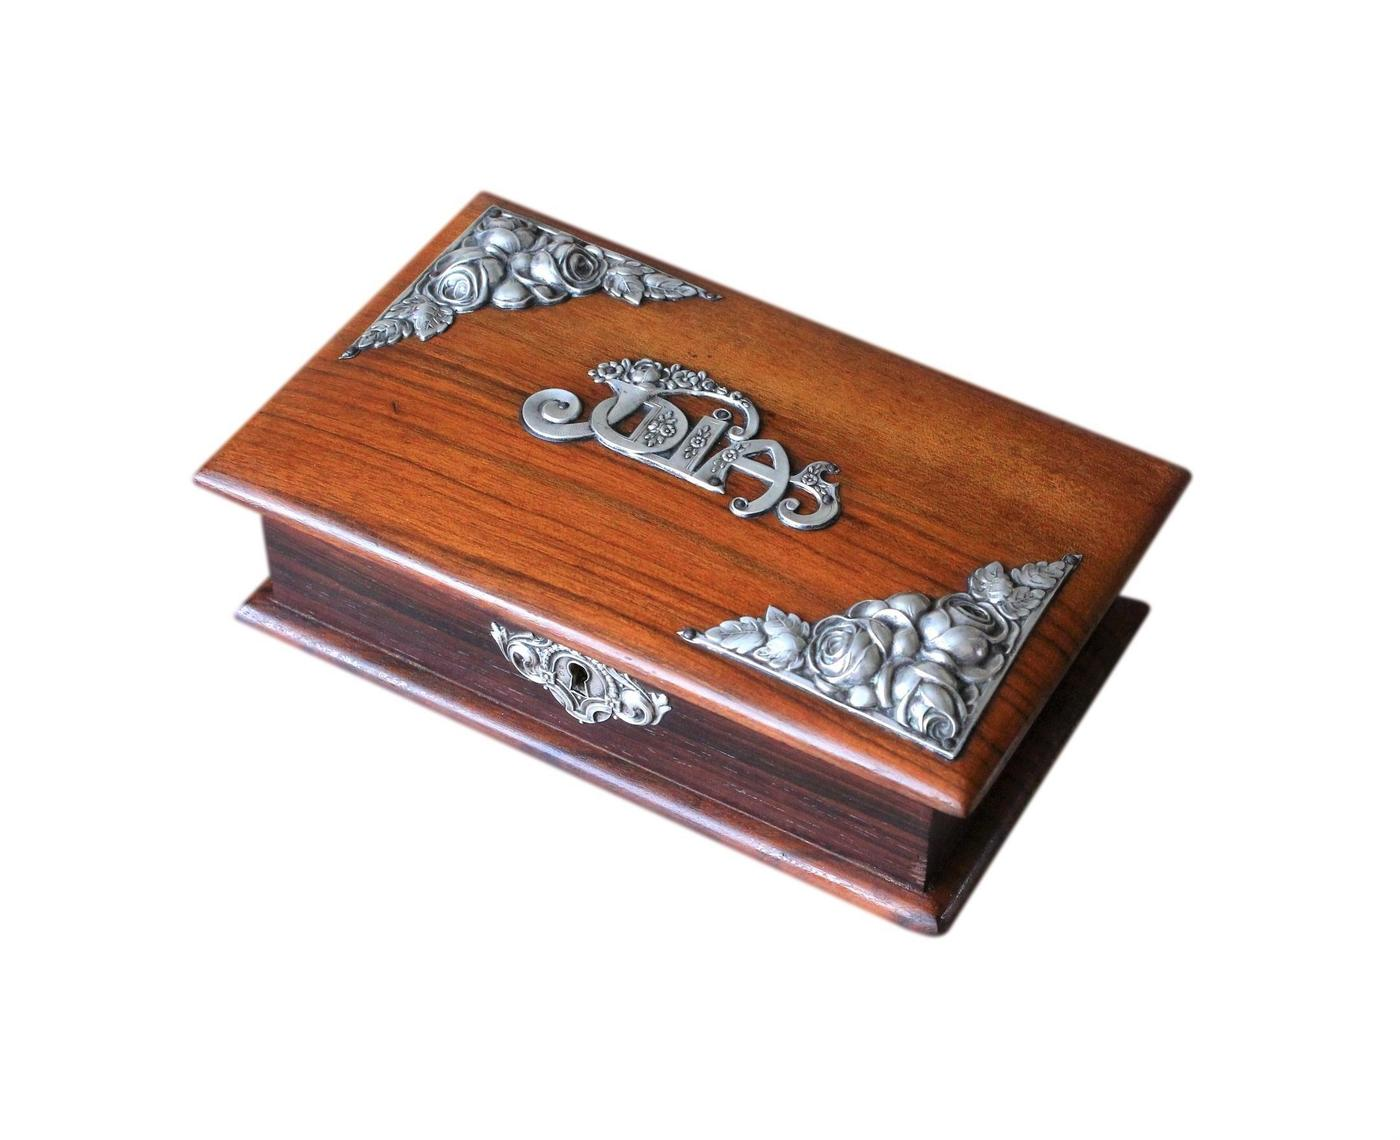 1930s Portuguese Rosewood And Silver Jewellery Box